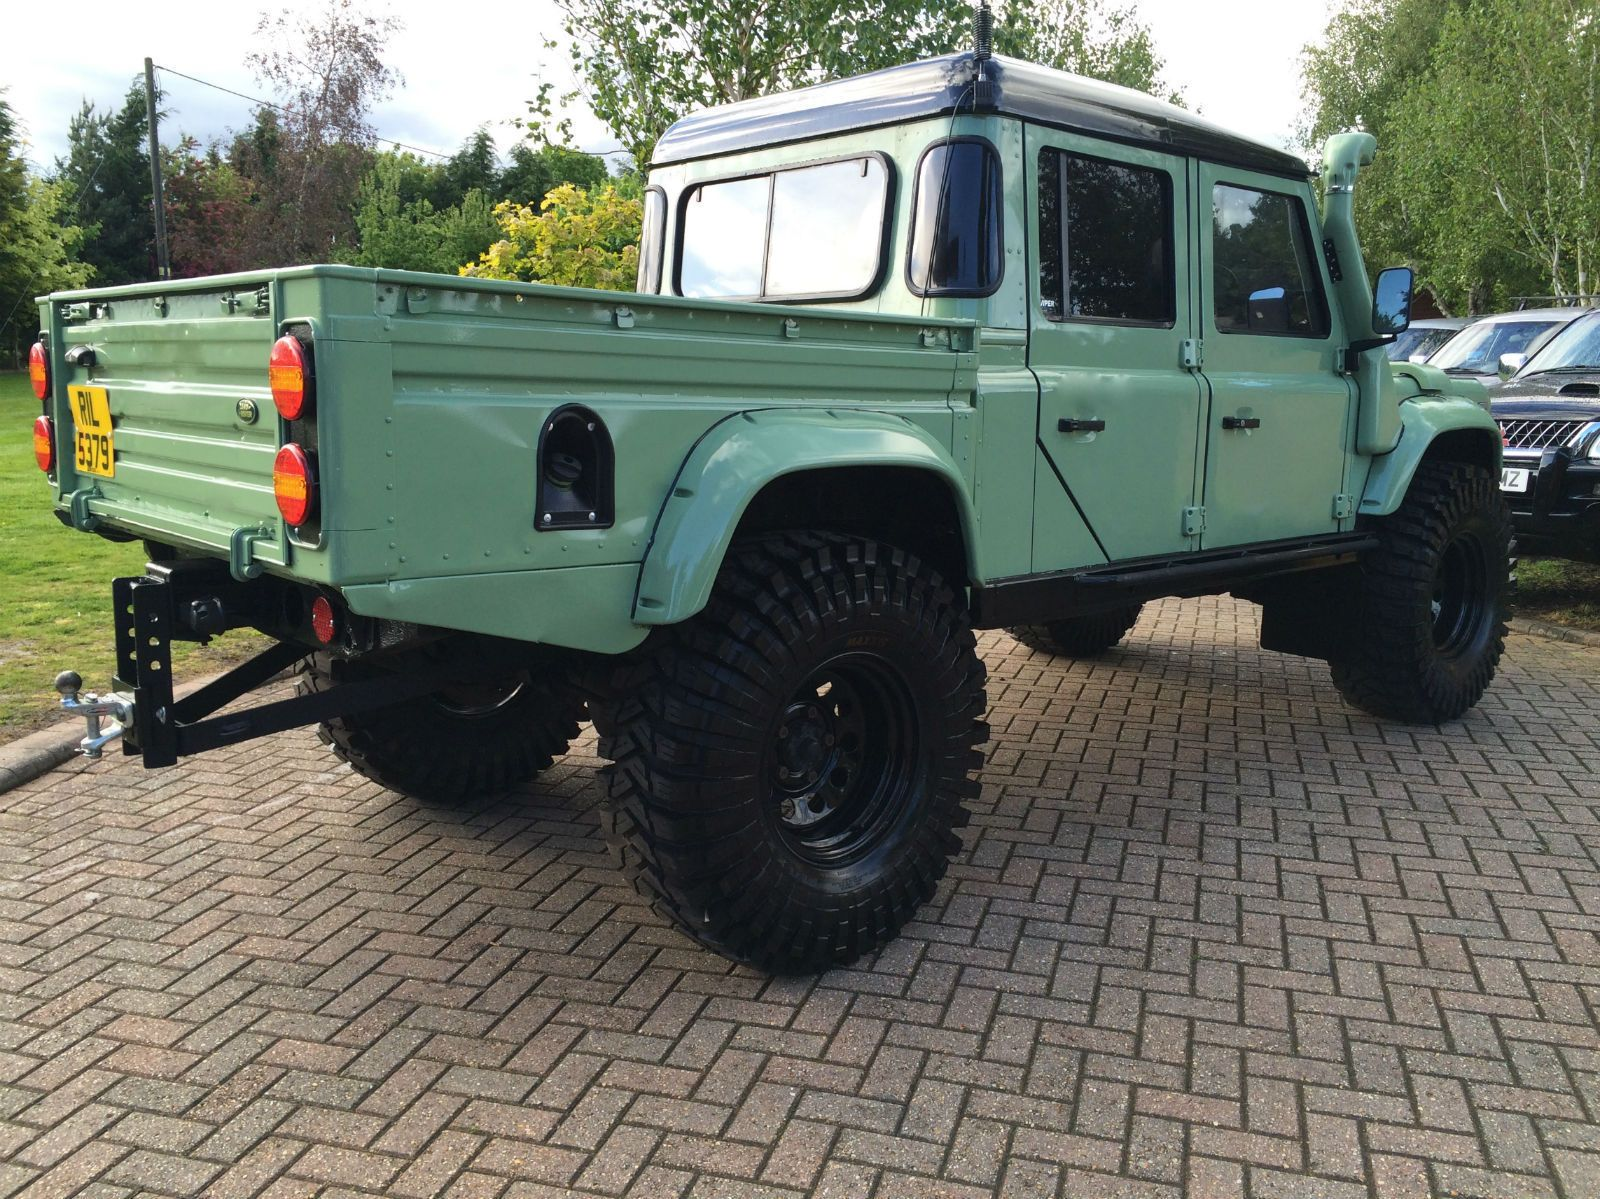 1999 land rover defender 130 td5 double cab land rover defender 130 defender 130 and land. Black Bedroom Furniture Sets. Home Design Ideas